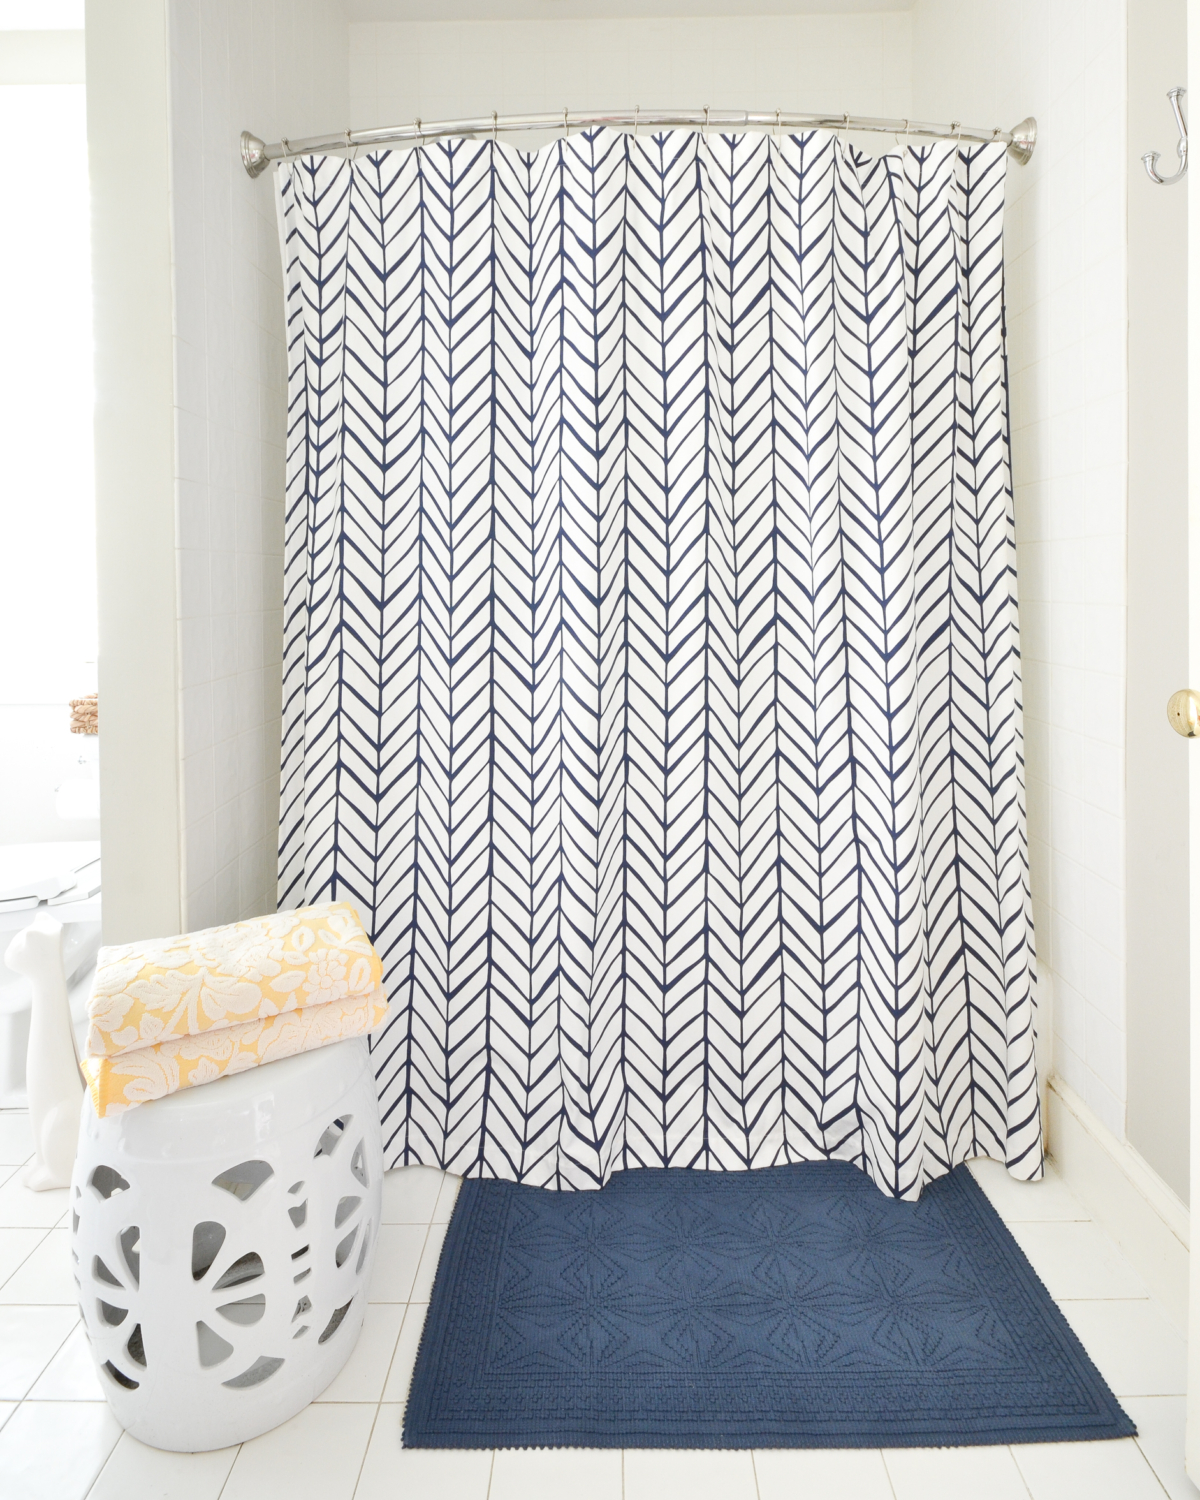 Easy tips for a clean bathroom that you can use everyday, plus sources for this pretty, simple white and navy bathroom